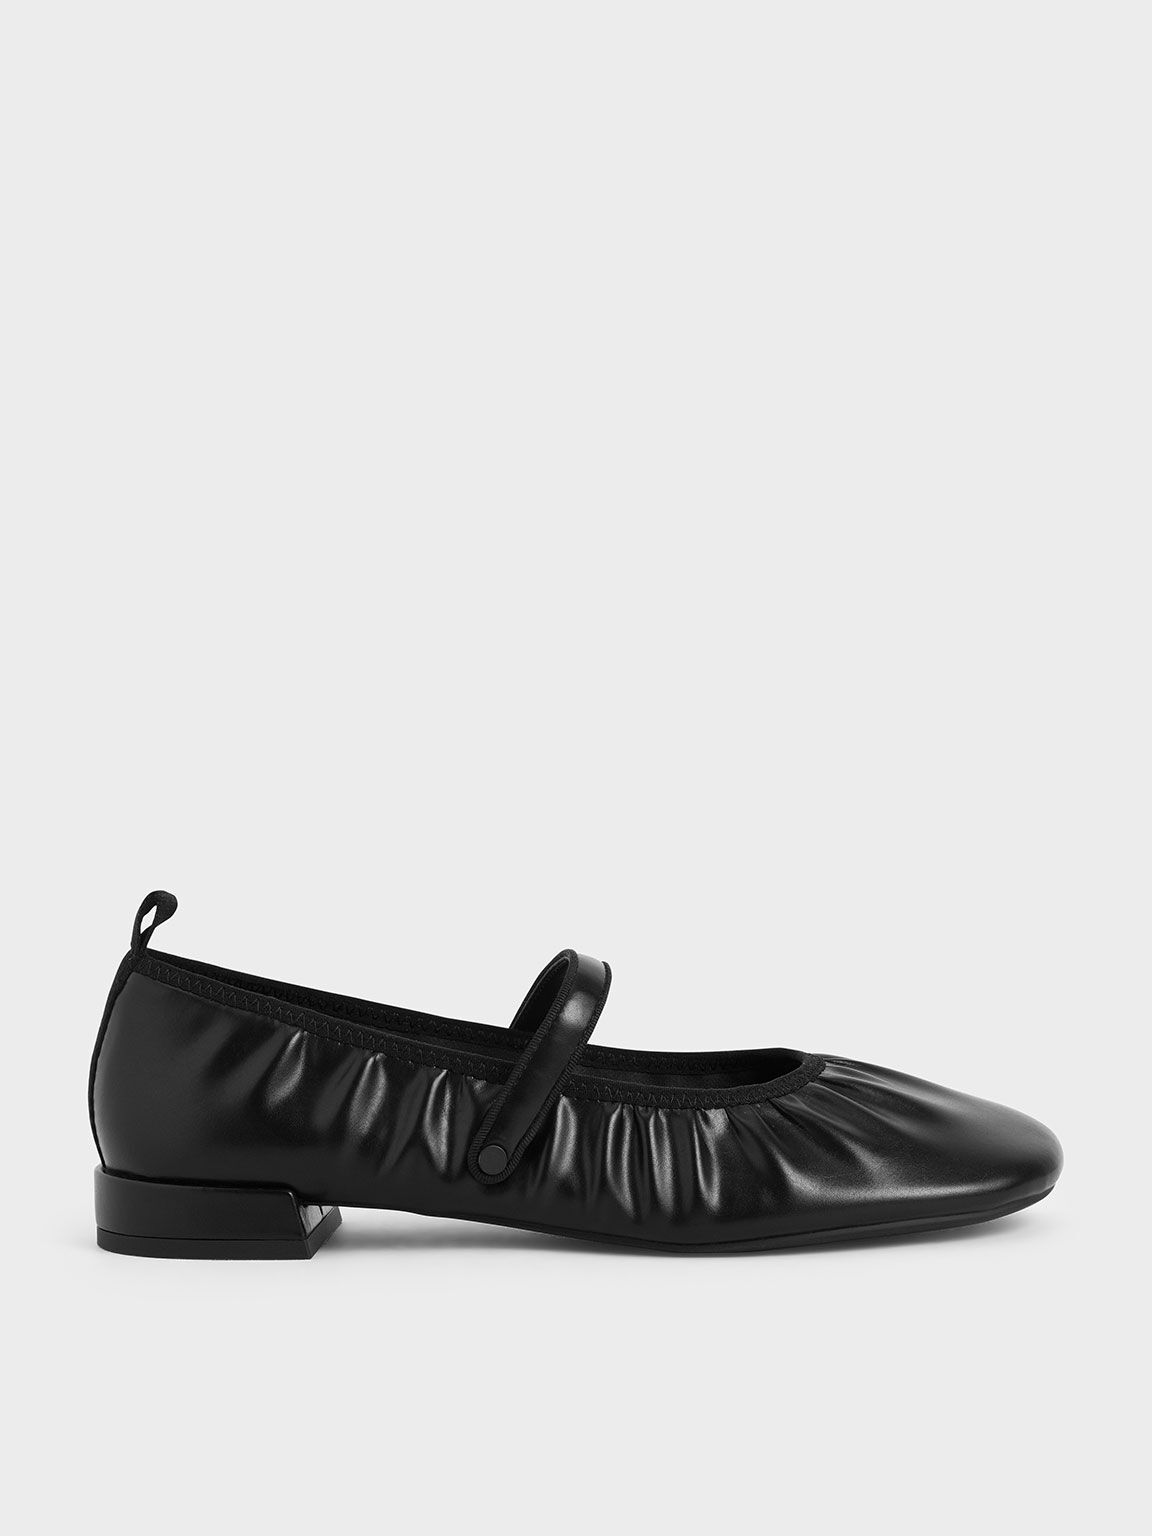 Mary Jane Flats, Black, hi-res